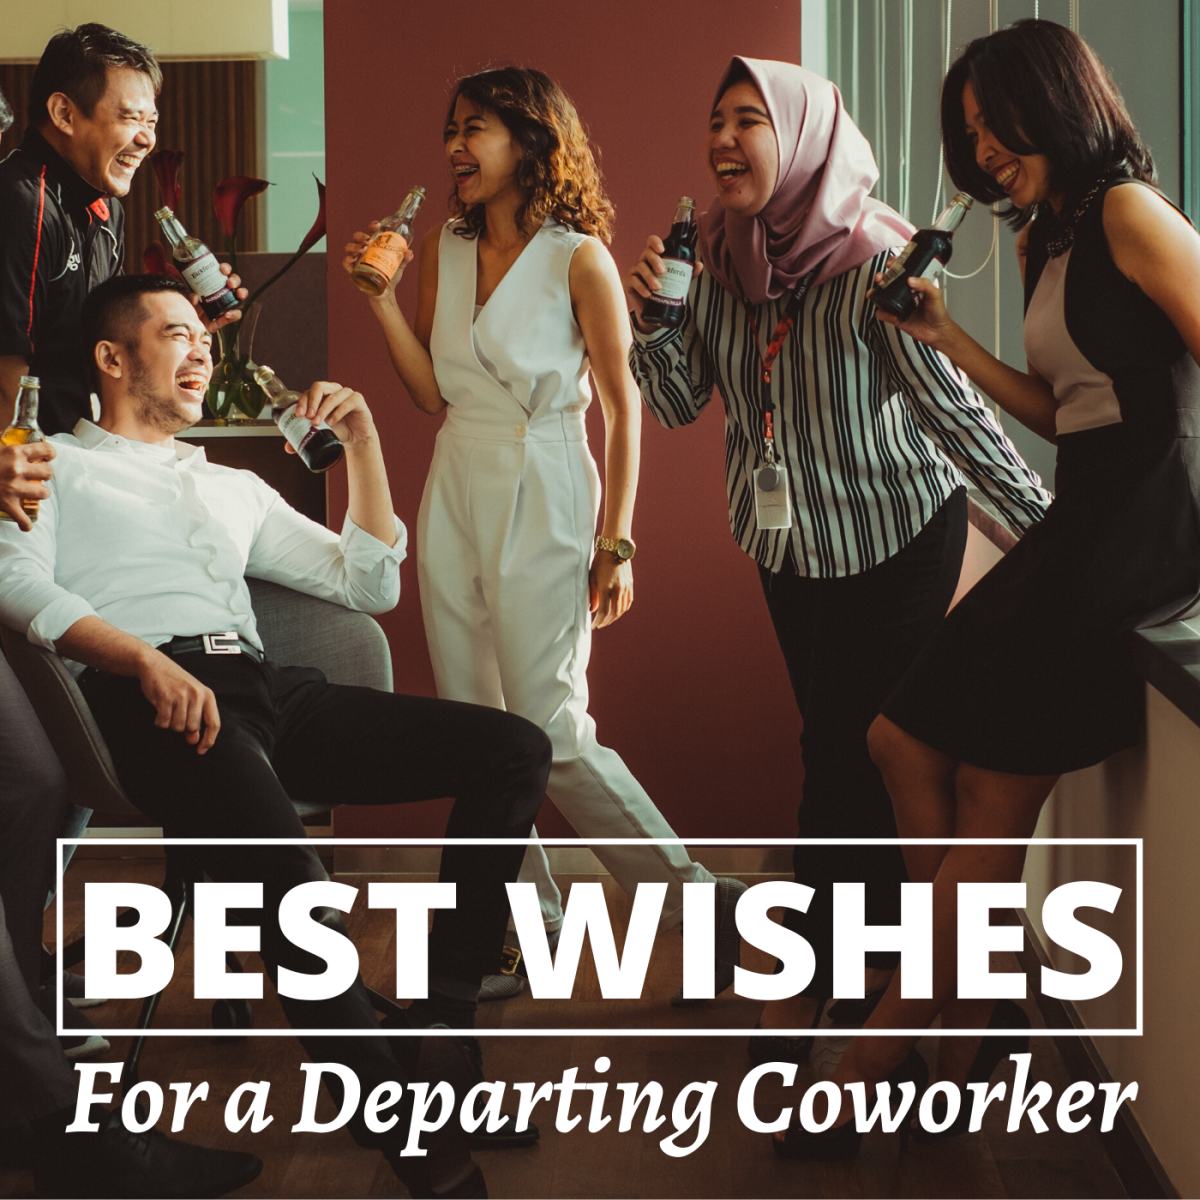 The departure of a boss, colleague, or coworker is always bittersweet. Send them off the right way with a thoughtful message or speech.